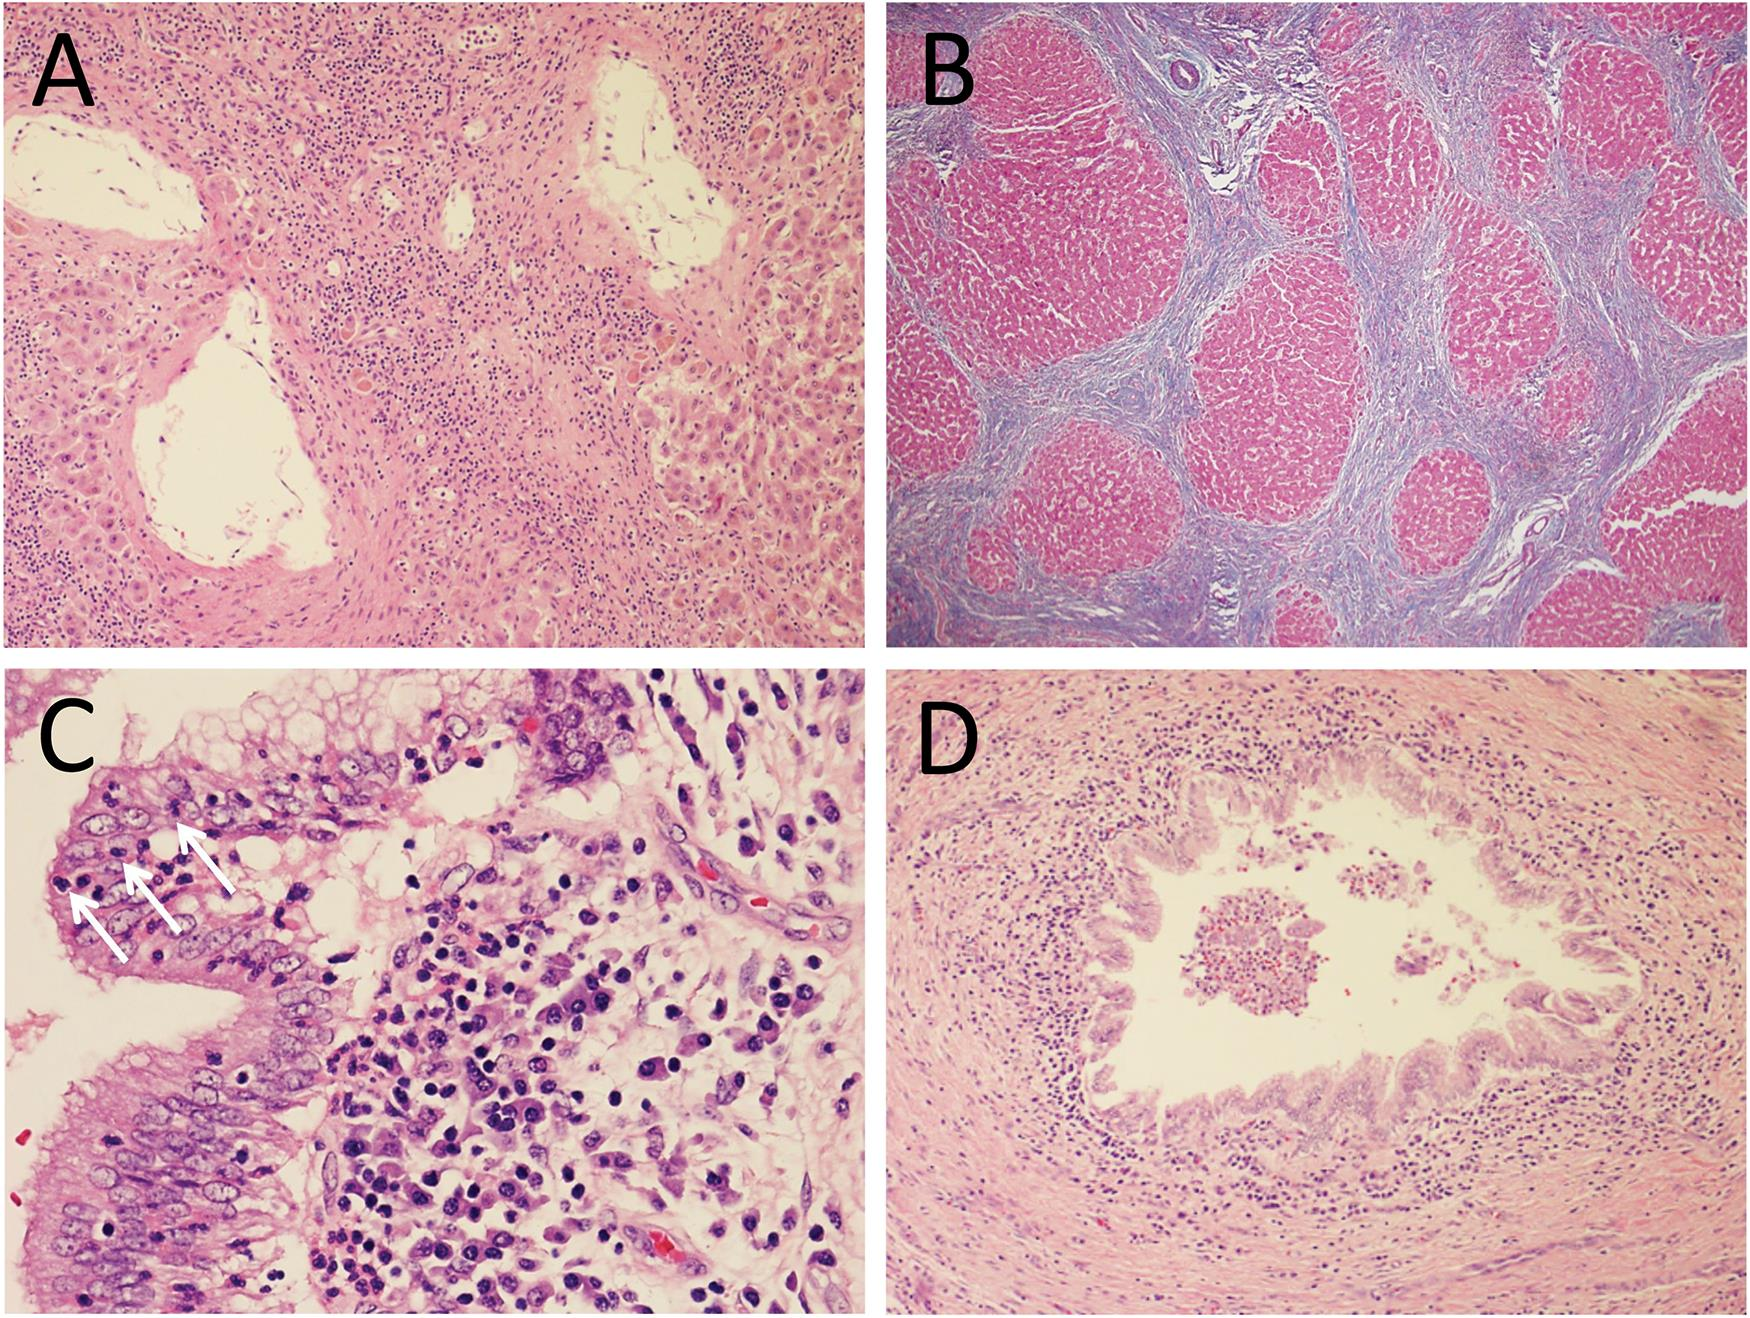 (A) Portal tract with preserved vascular structures, without accompanying bile duct, consistent with the patient's diagnosis of PSC; H&E stain, 100×. (B) Trichrome stain highlights cirrhotic liver parenchyma; MT stain, 100×. (C) Bile duct with numerous intraepithelial neutrophils (arrows); H&E stain, 400×. (D) Large bile duct with intraluminal collections of neutrophils; H&E stain, 100×.